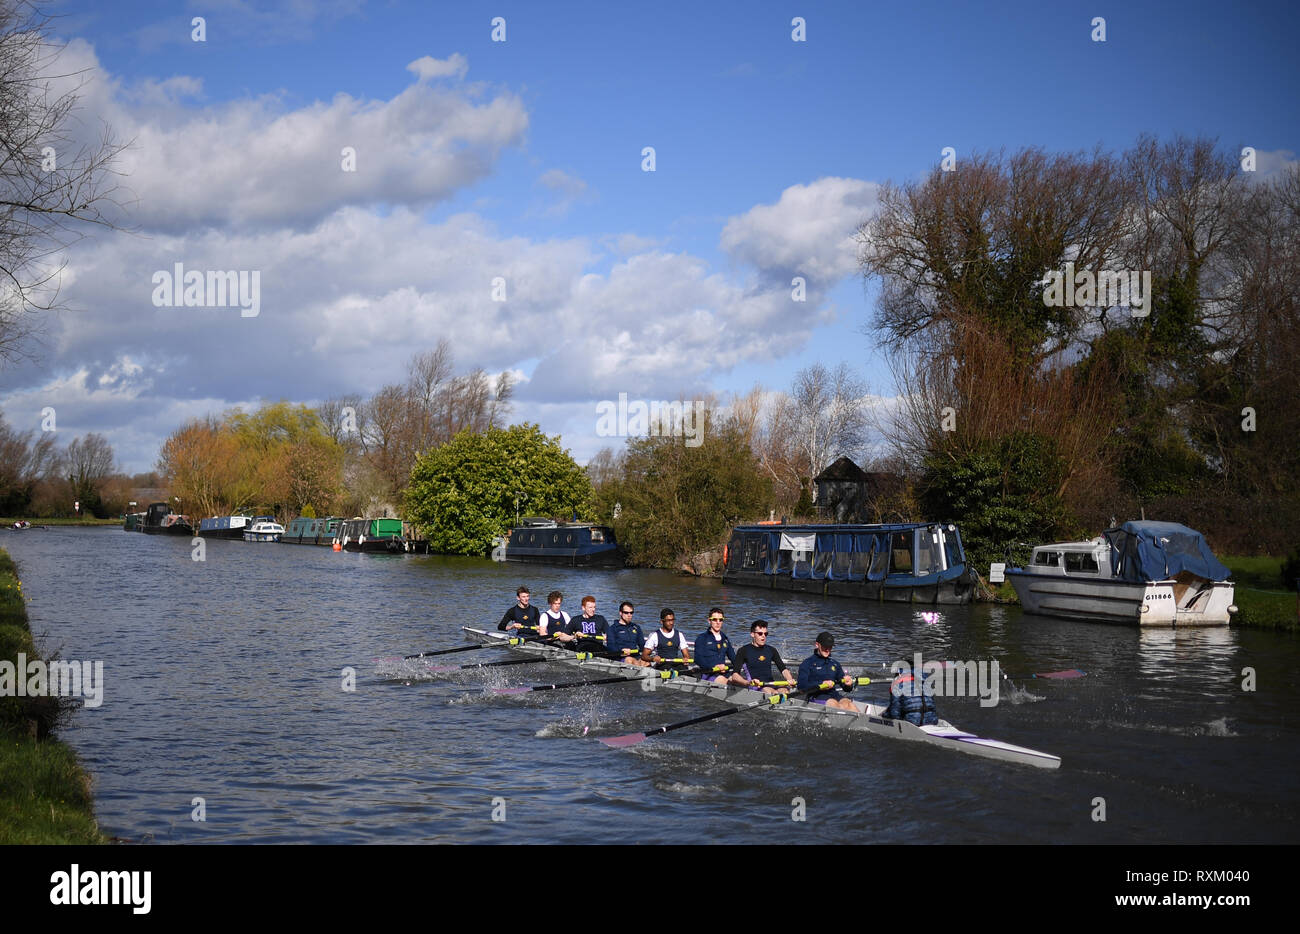 Magdelene College make their way to the start during the final day of the Cambridge University Lent Bumps along the River Cam in Cambridge. - Stock Image